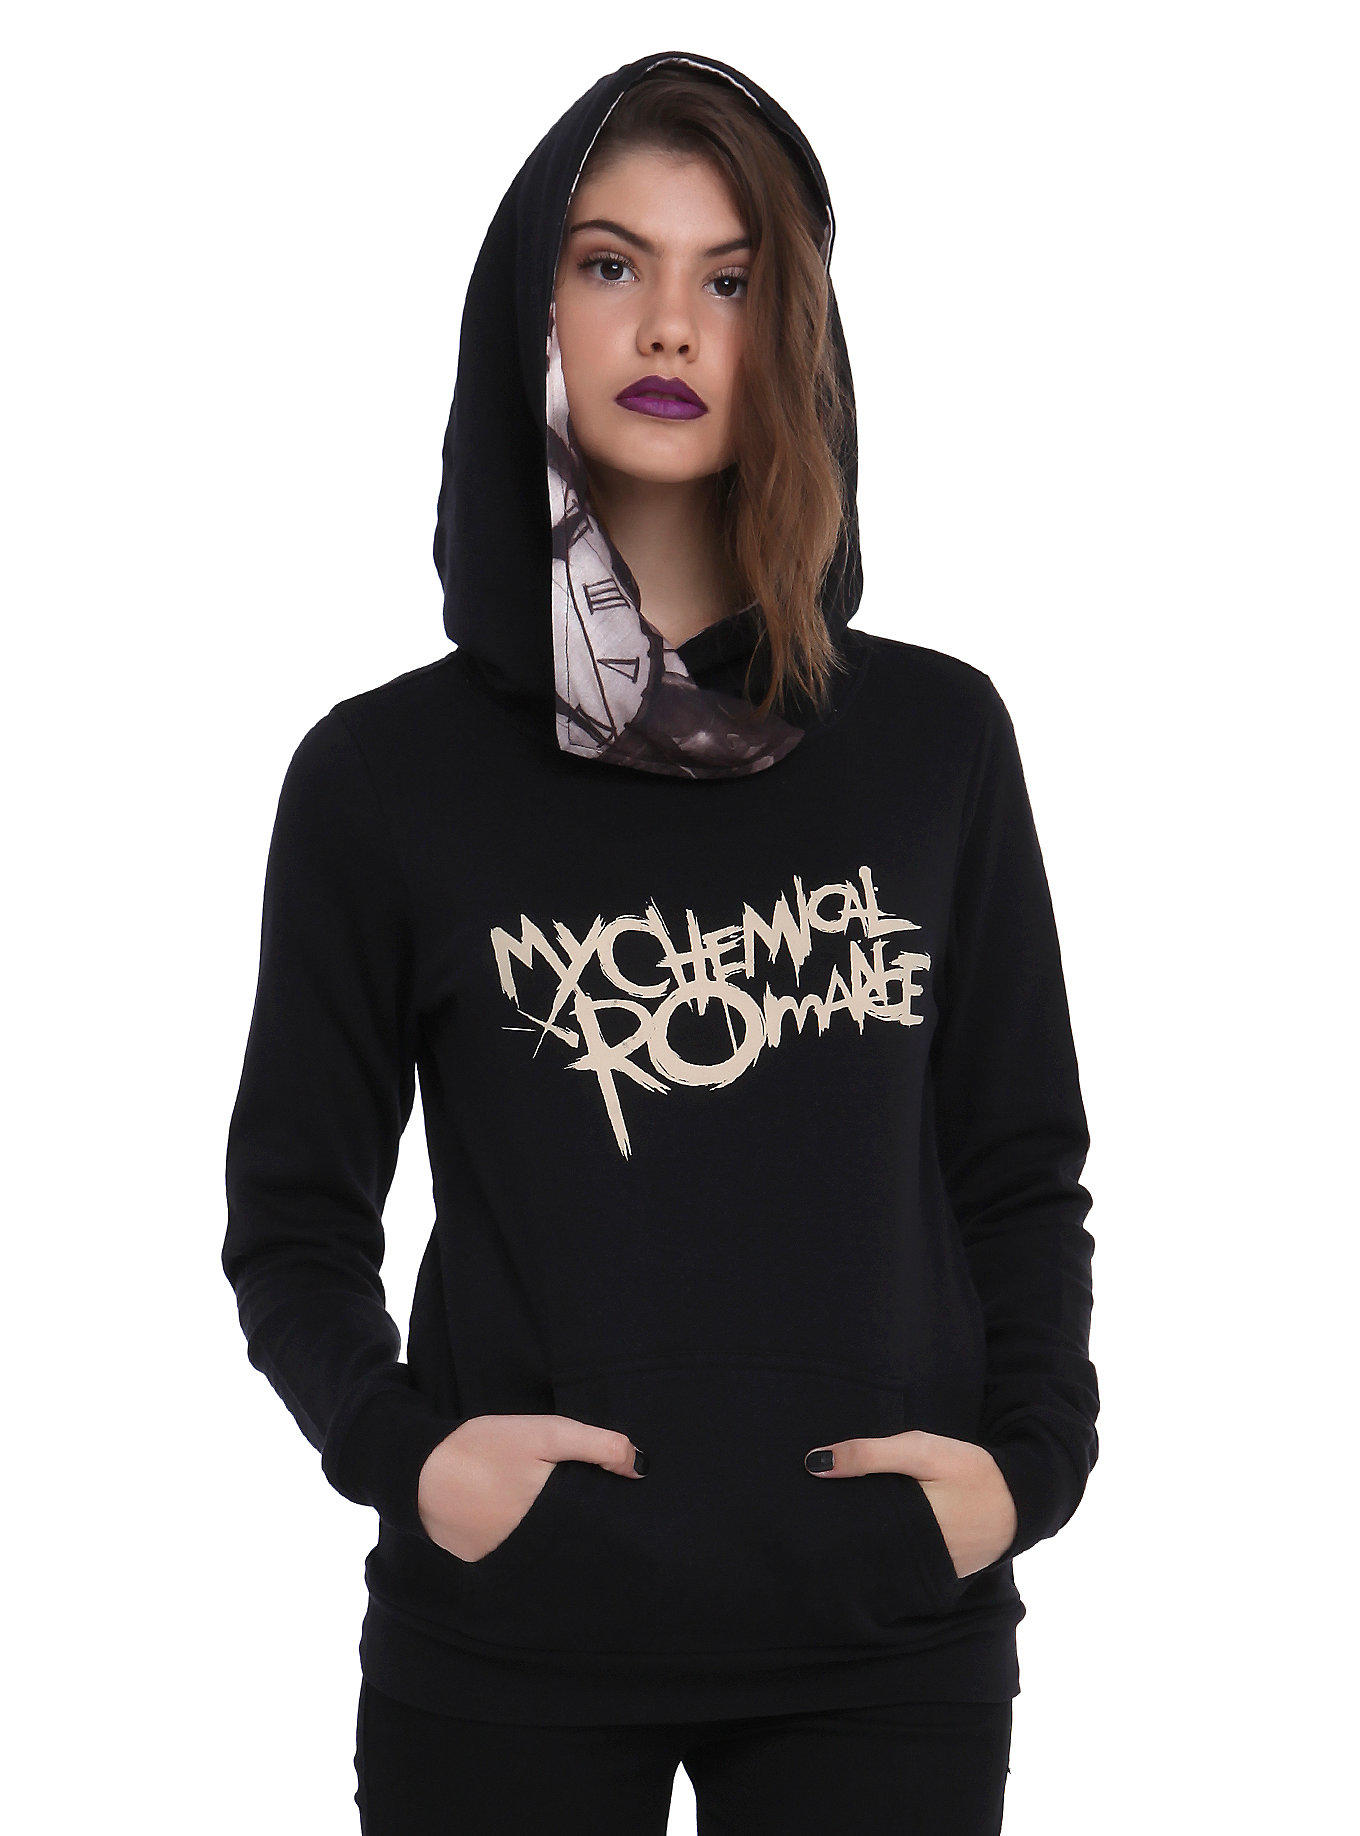 Hot topic hoodies